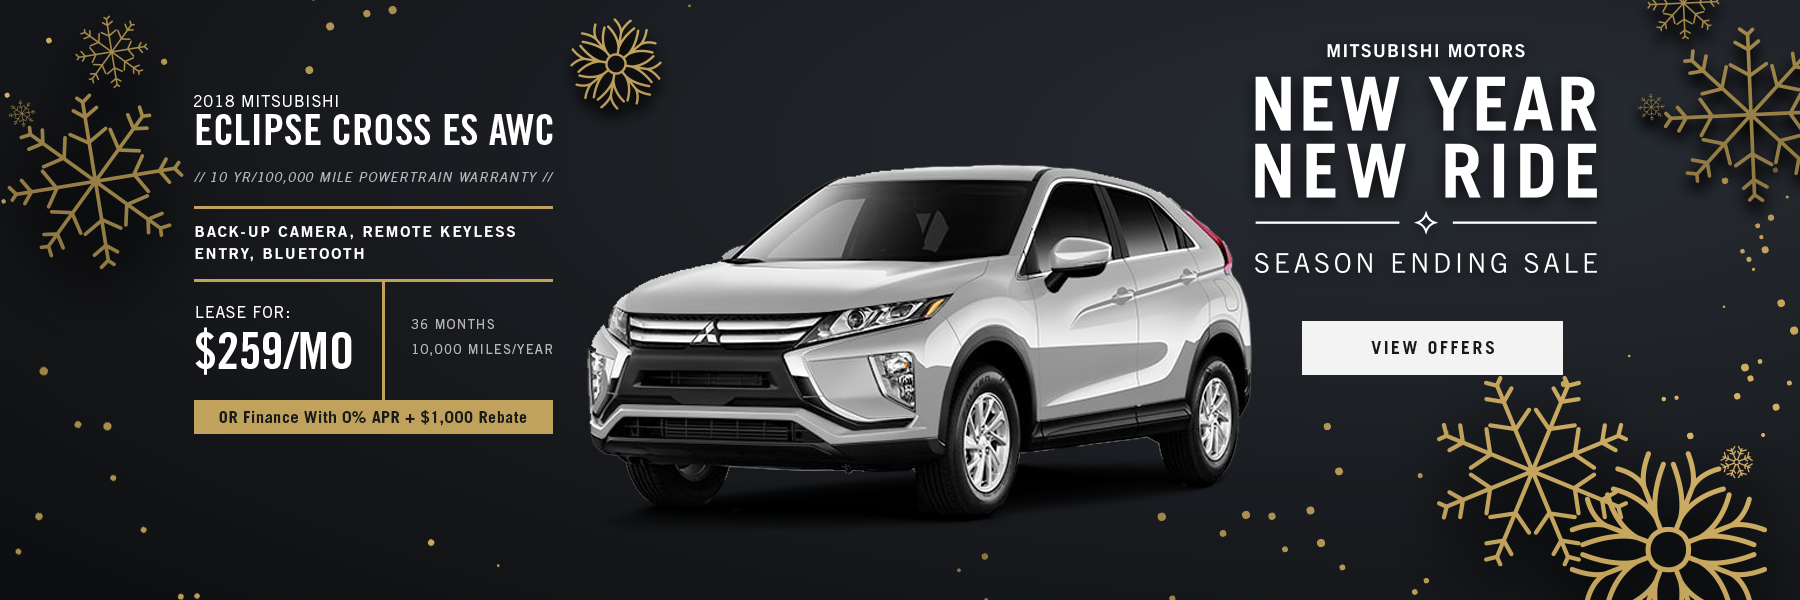 Mitsubishi Eclipse Cross Special Offer Concord, NH